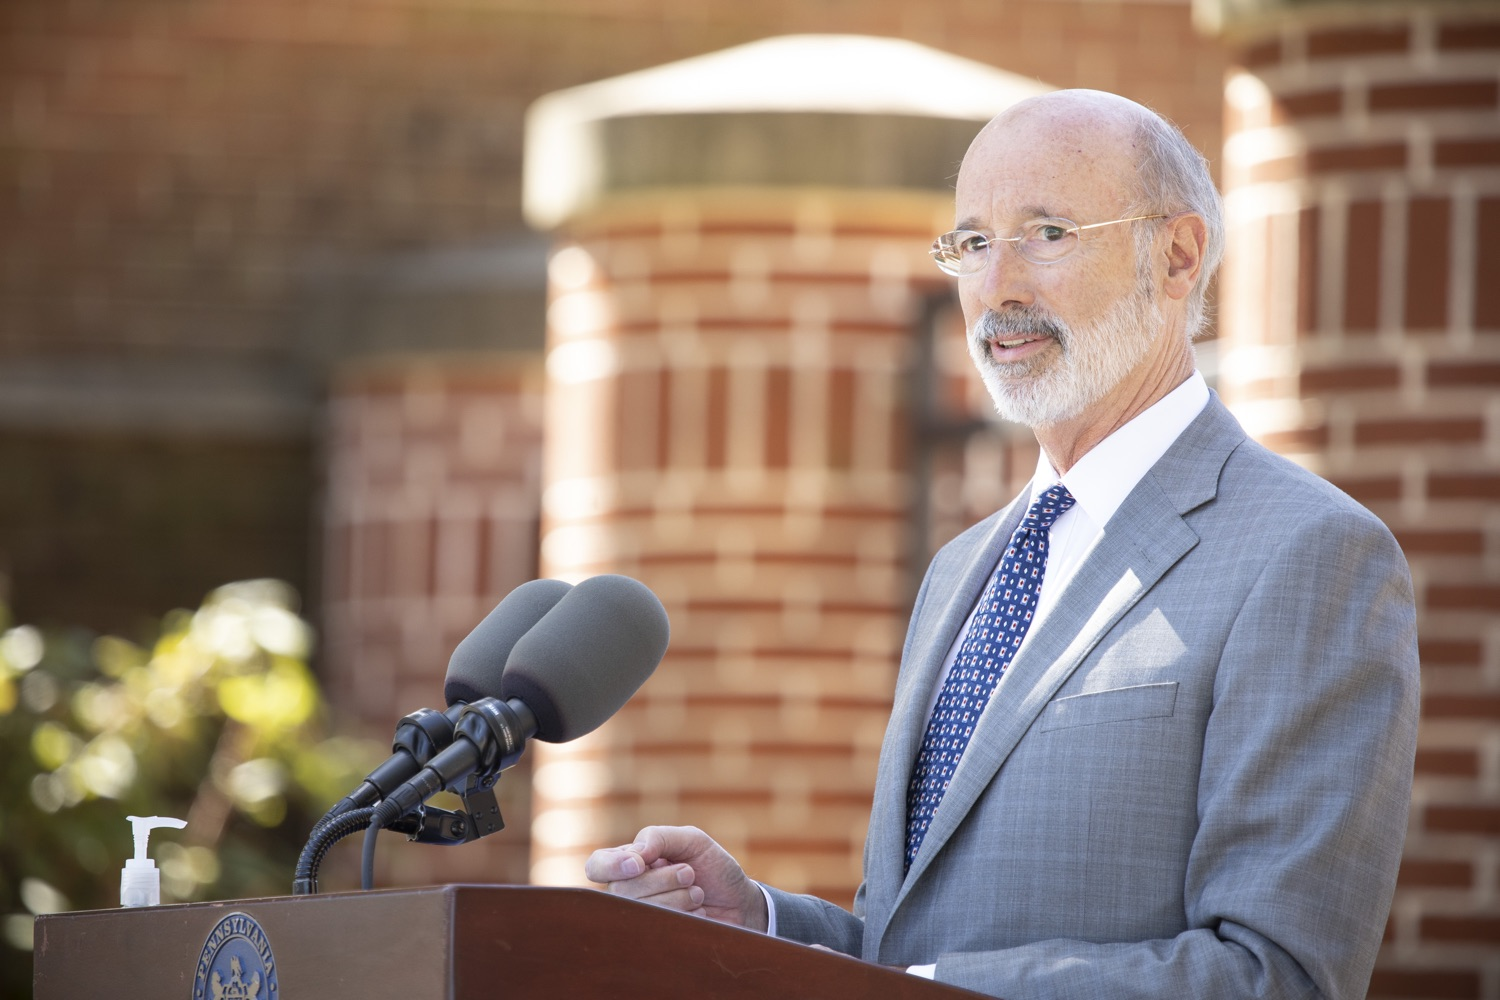 "<a href=""https://filesource.wostreaming.net/commonwealthofpa/photo/18306_gov_aca_dz_009.jpg"" target=""_blank"">⇣ Download Photo<br></a>Pennsylvania Governor Tom Wolf speaking with the press.  Governor Tom Wolf today amplified his call to protect the ACA and provide health care for all amid threats as the US Senate Judiciary Committee hearings to confirm conservative Judge Amy Coney Barrett to the Supreme Court begin next week and the pandemic ramps up across the country. York, PA  October 8, 2020"